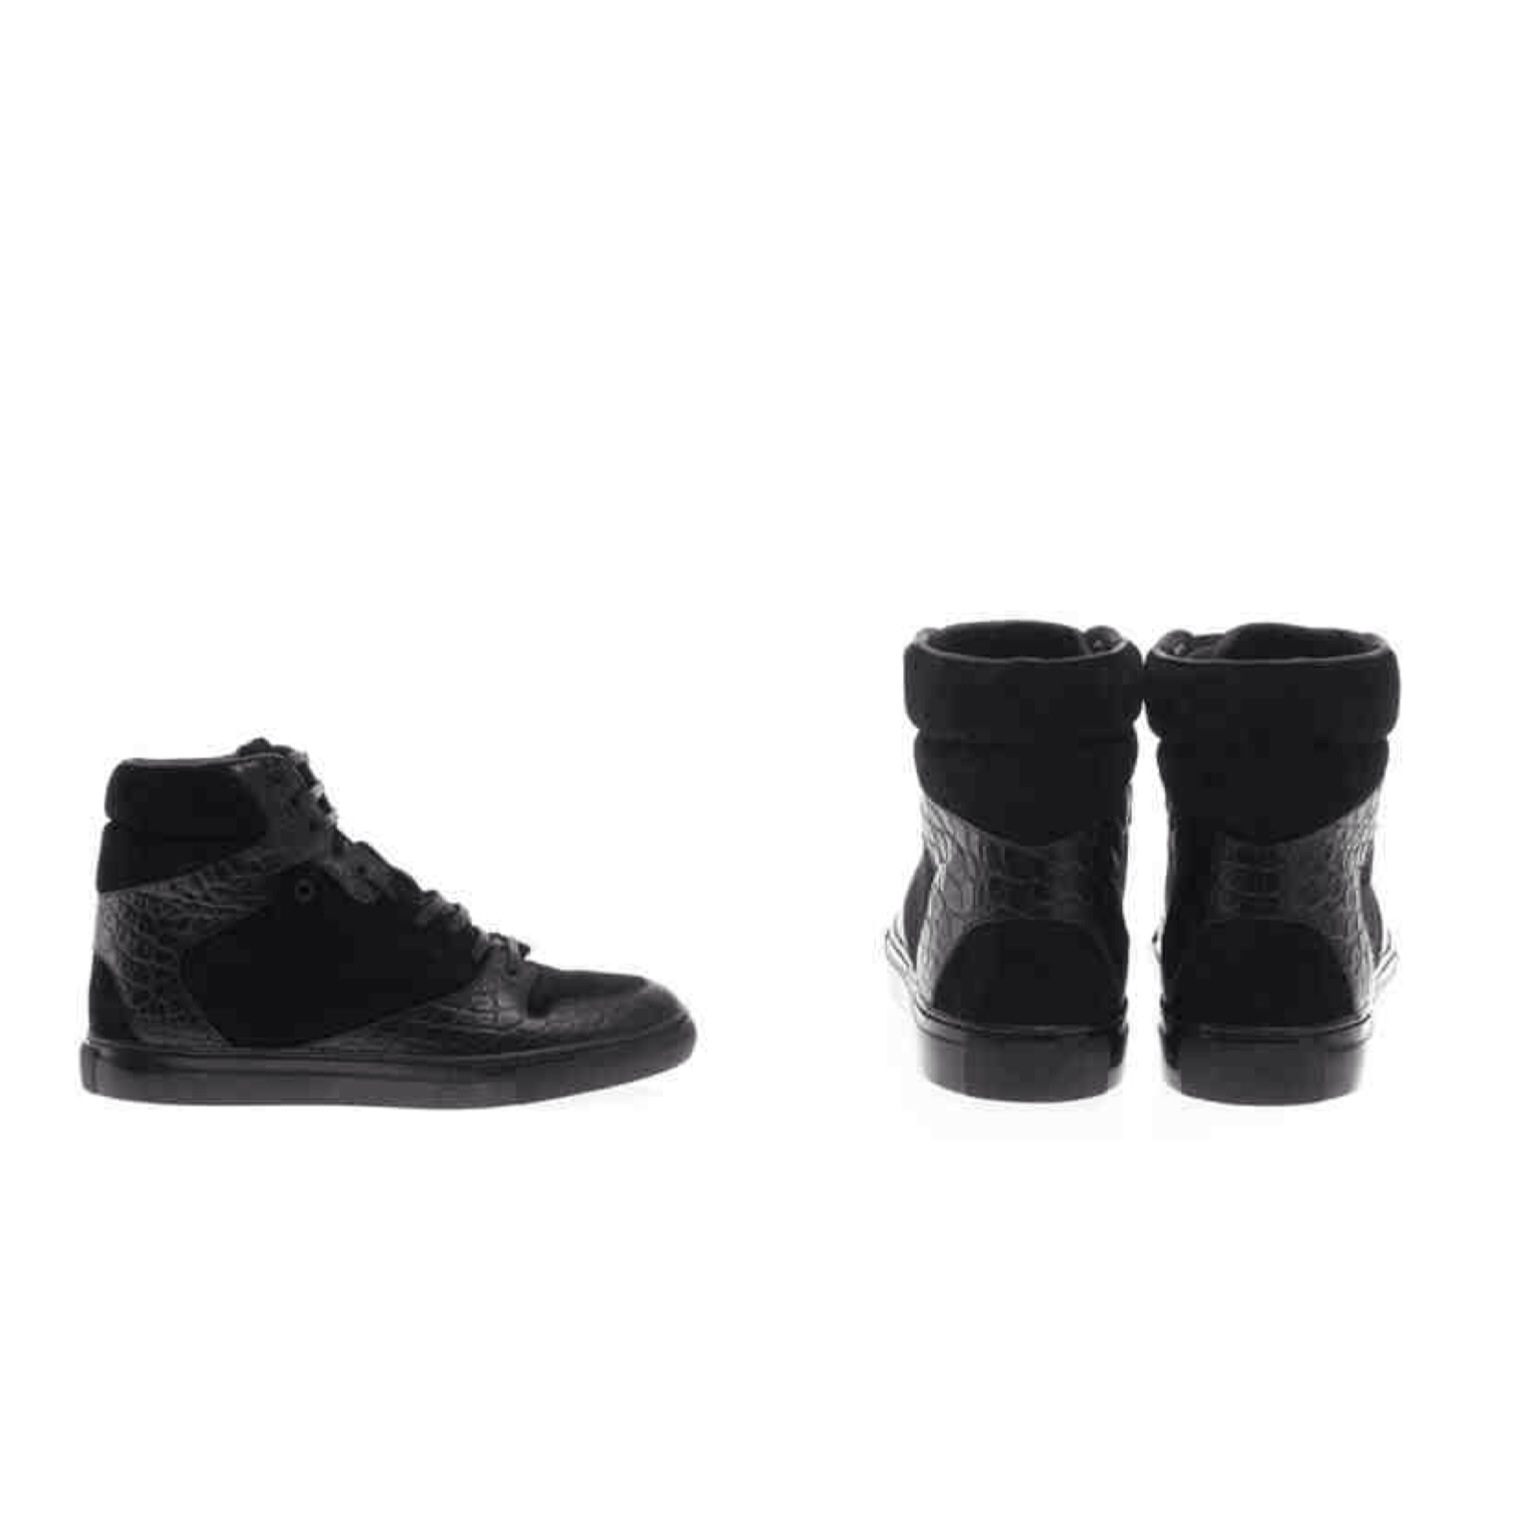 Balenciaga Leather Ankle Boots in Black. View Fullscreen